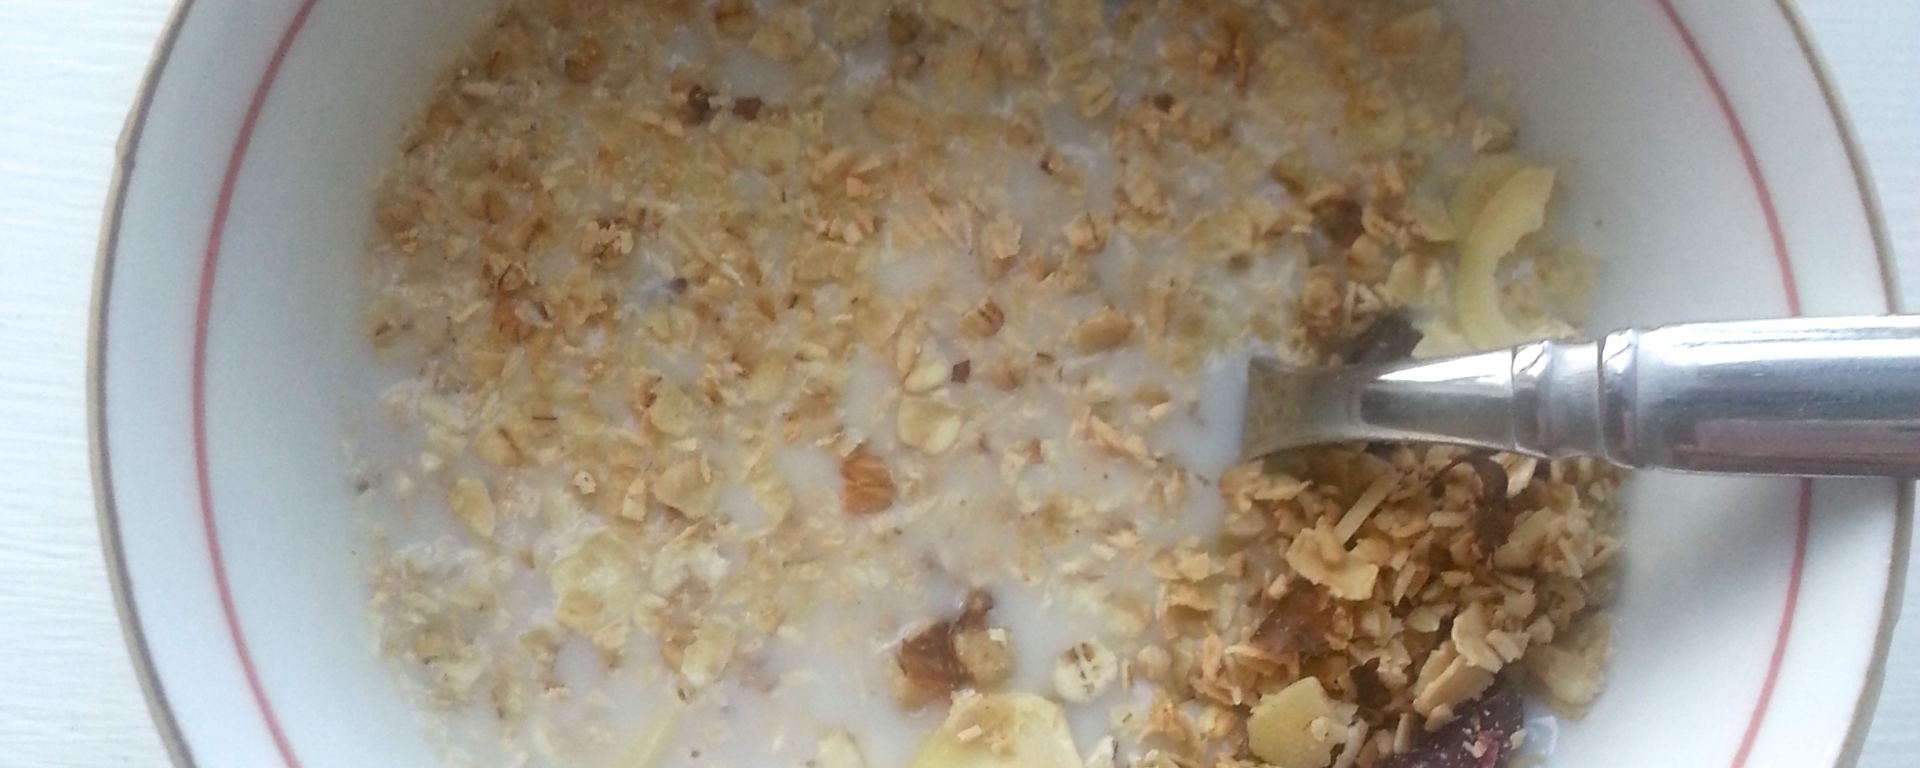 Easy homemade granola without preservatives, no added sugar